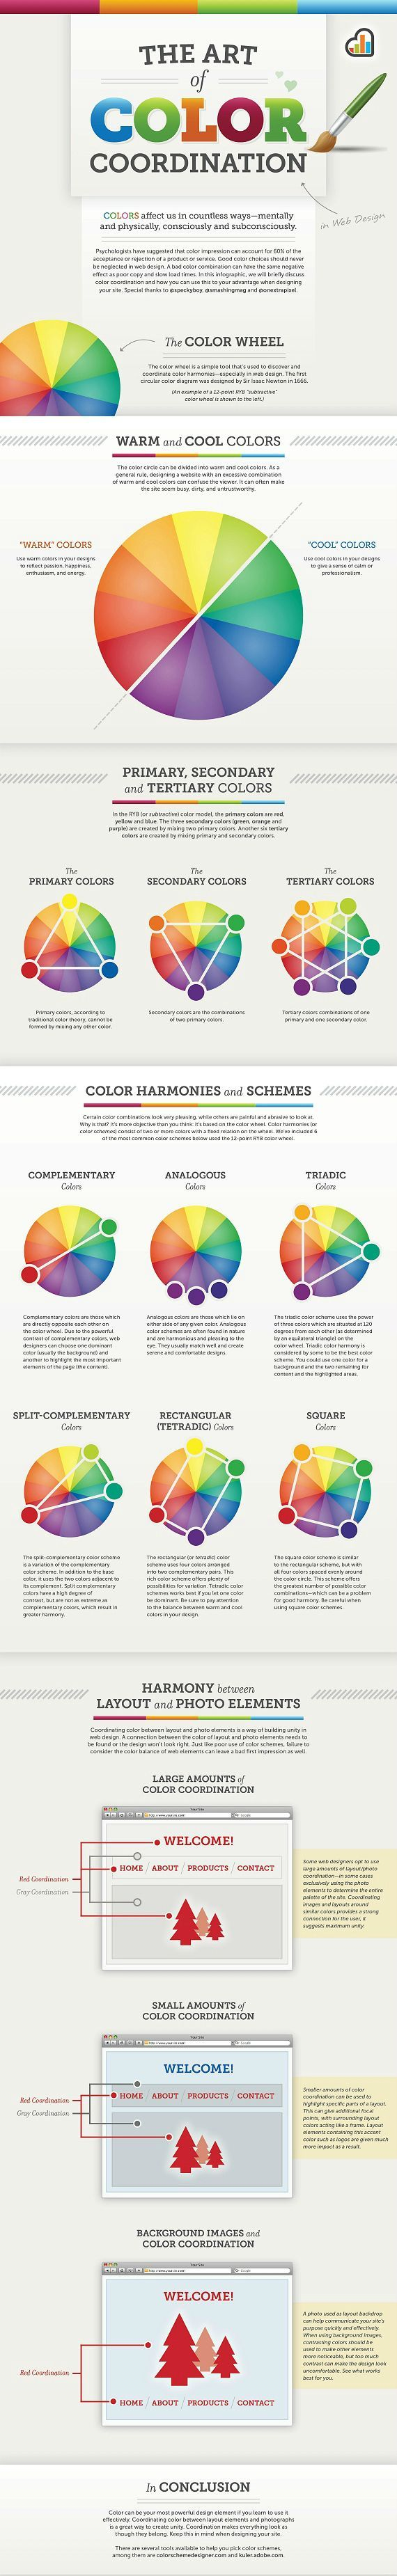 Colours, their palettes, and how to use them in layouts.